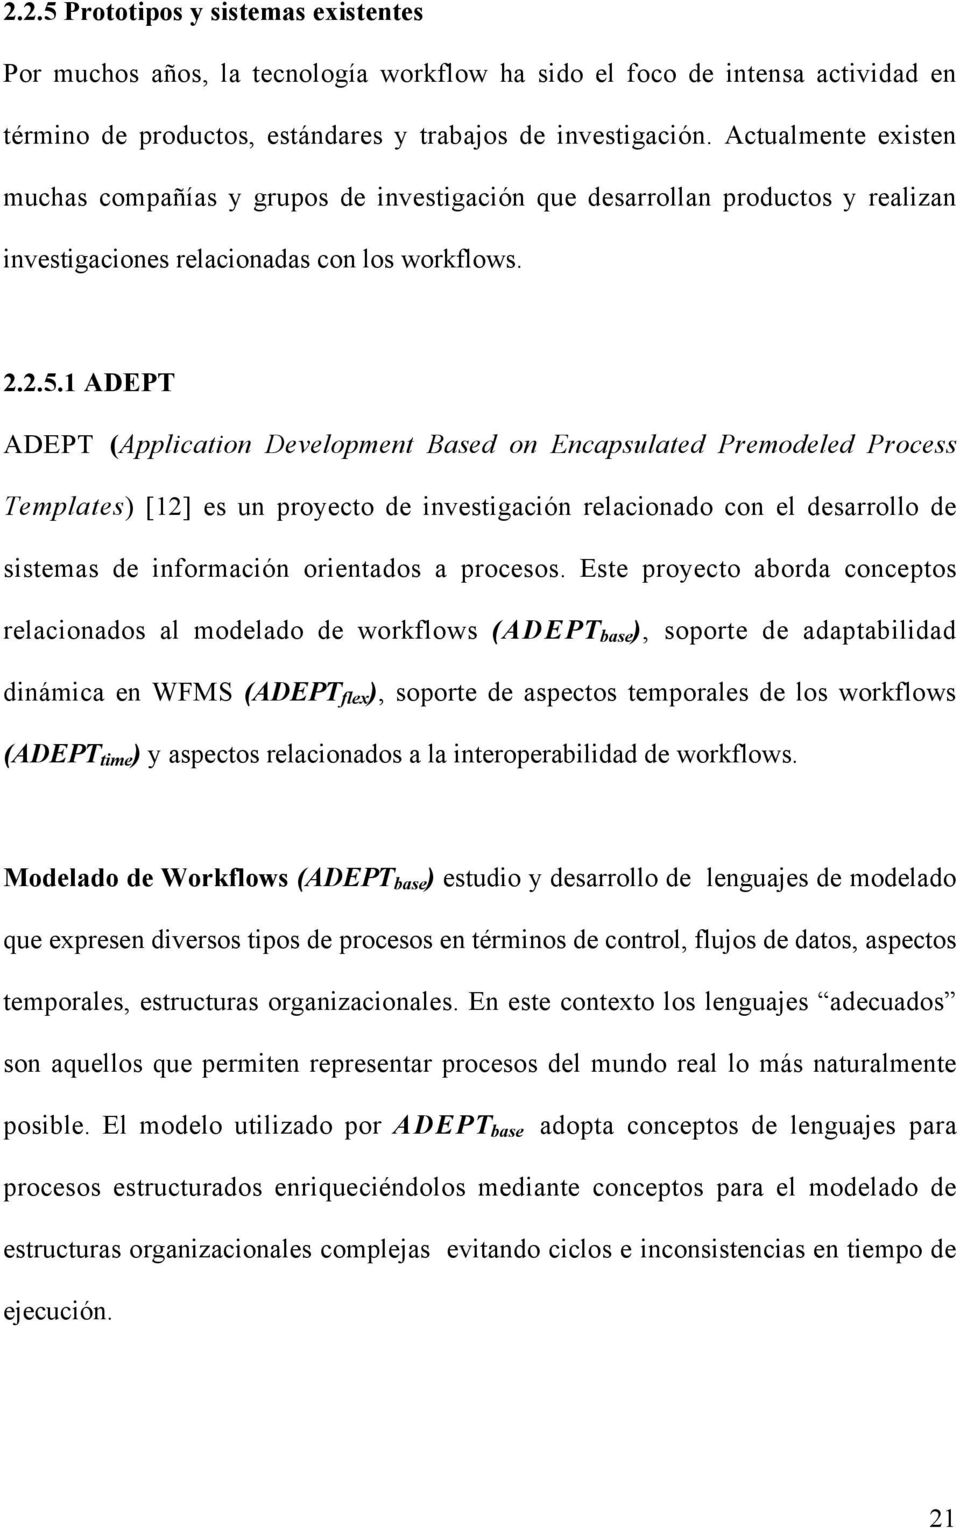 1 ADEPT ADEPT (Application Development Based on Encapsulated Premodeled Process Templates) [12] es un proyecto de investigación relacionado con el desarrollo de sistemas de información orientados a